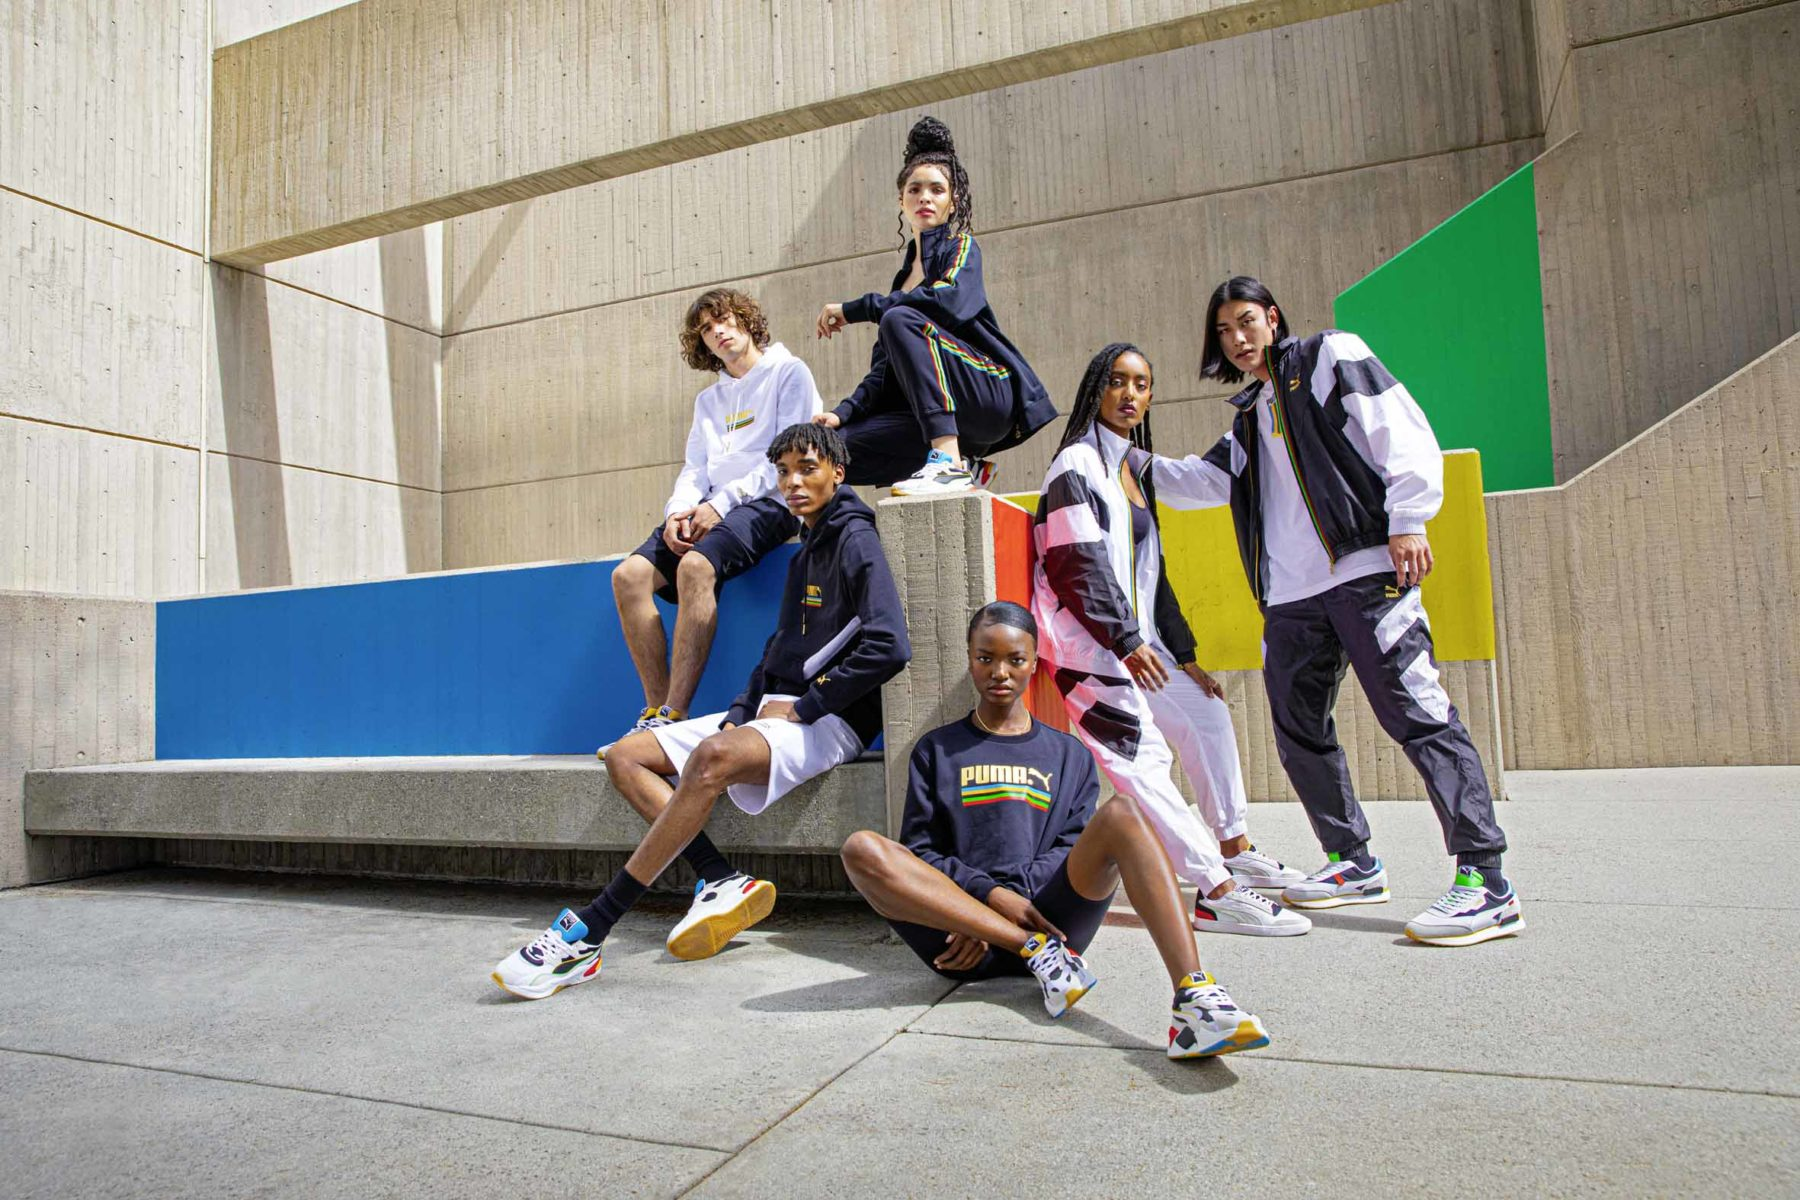 PUMA recognises the power of sport uniting the world with new Unity Collection